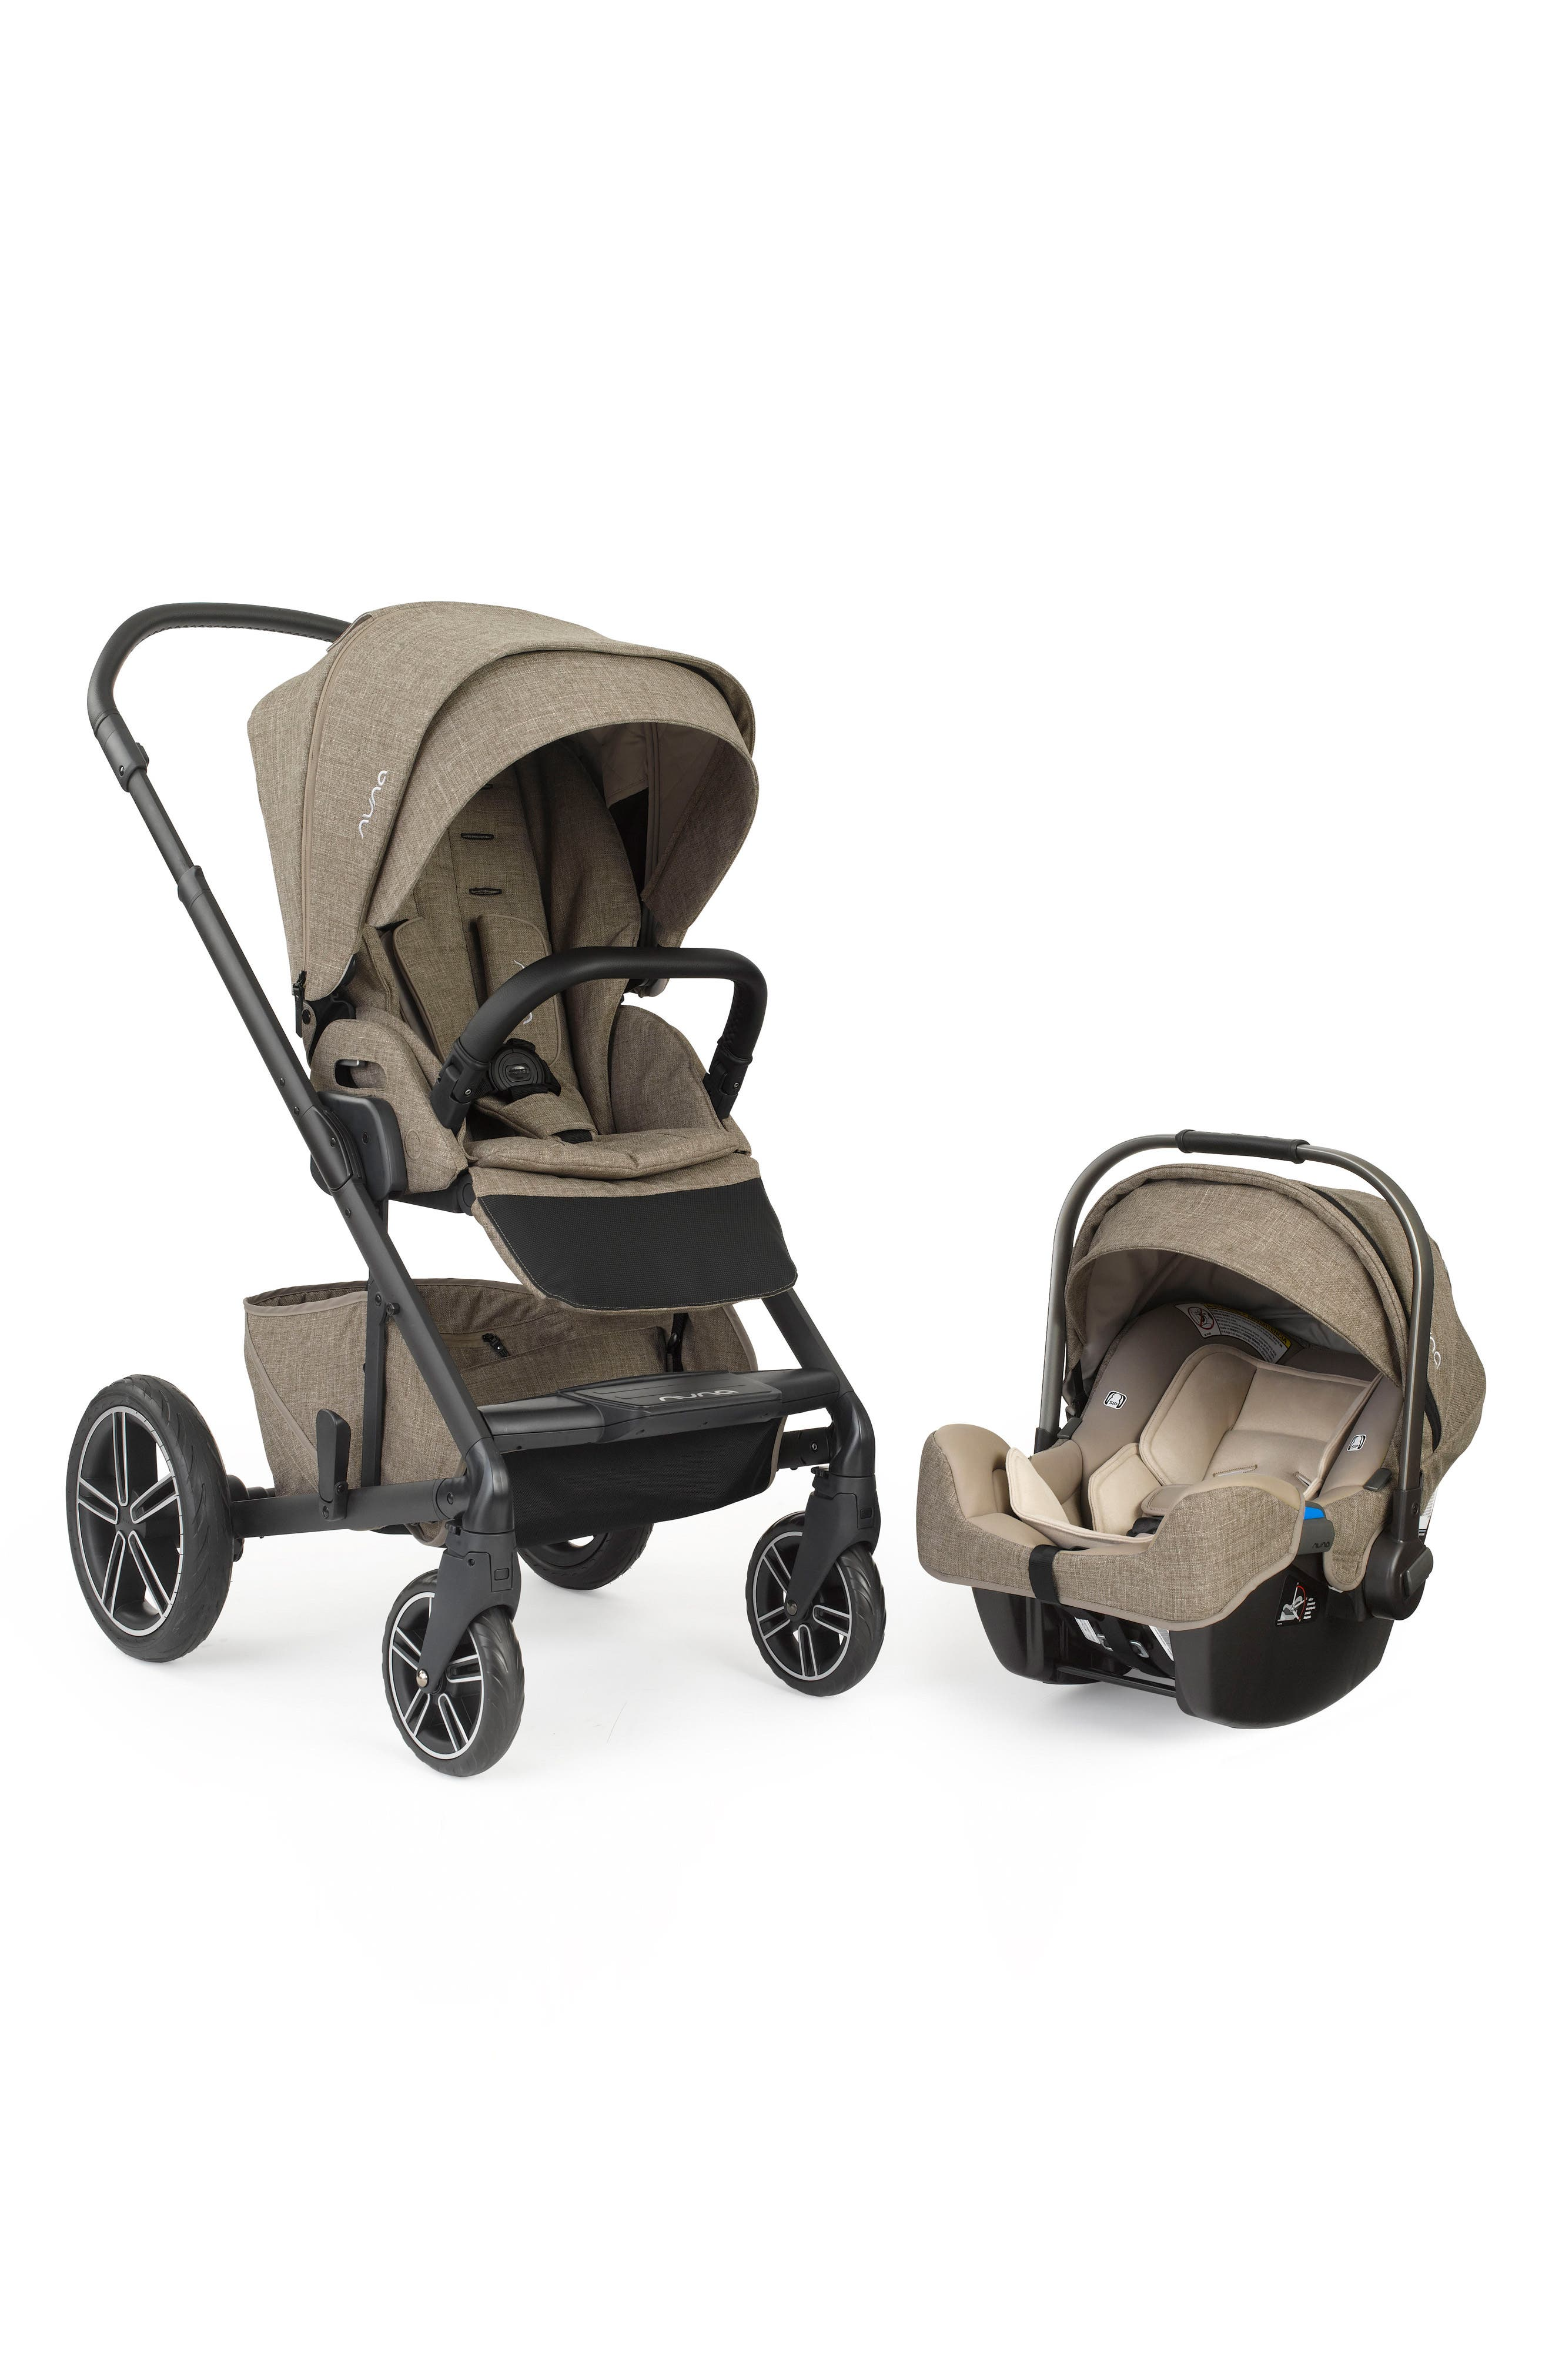 MIXX<sup>™</sup> 2 Stroller System & PIPA<sup>™</sup> Car Seat Set,                         Main,                         color, Latte